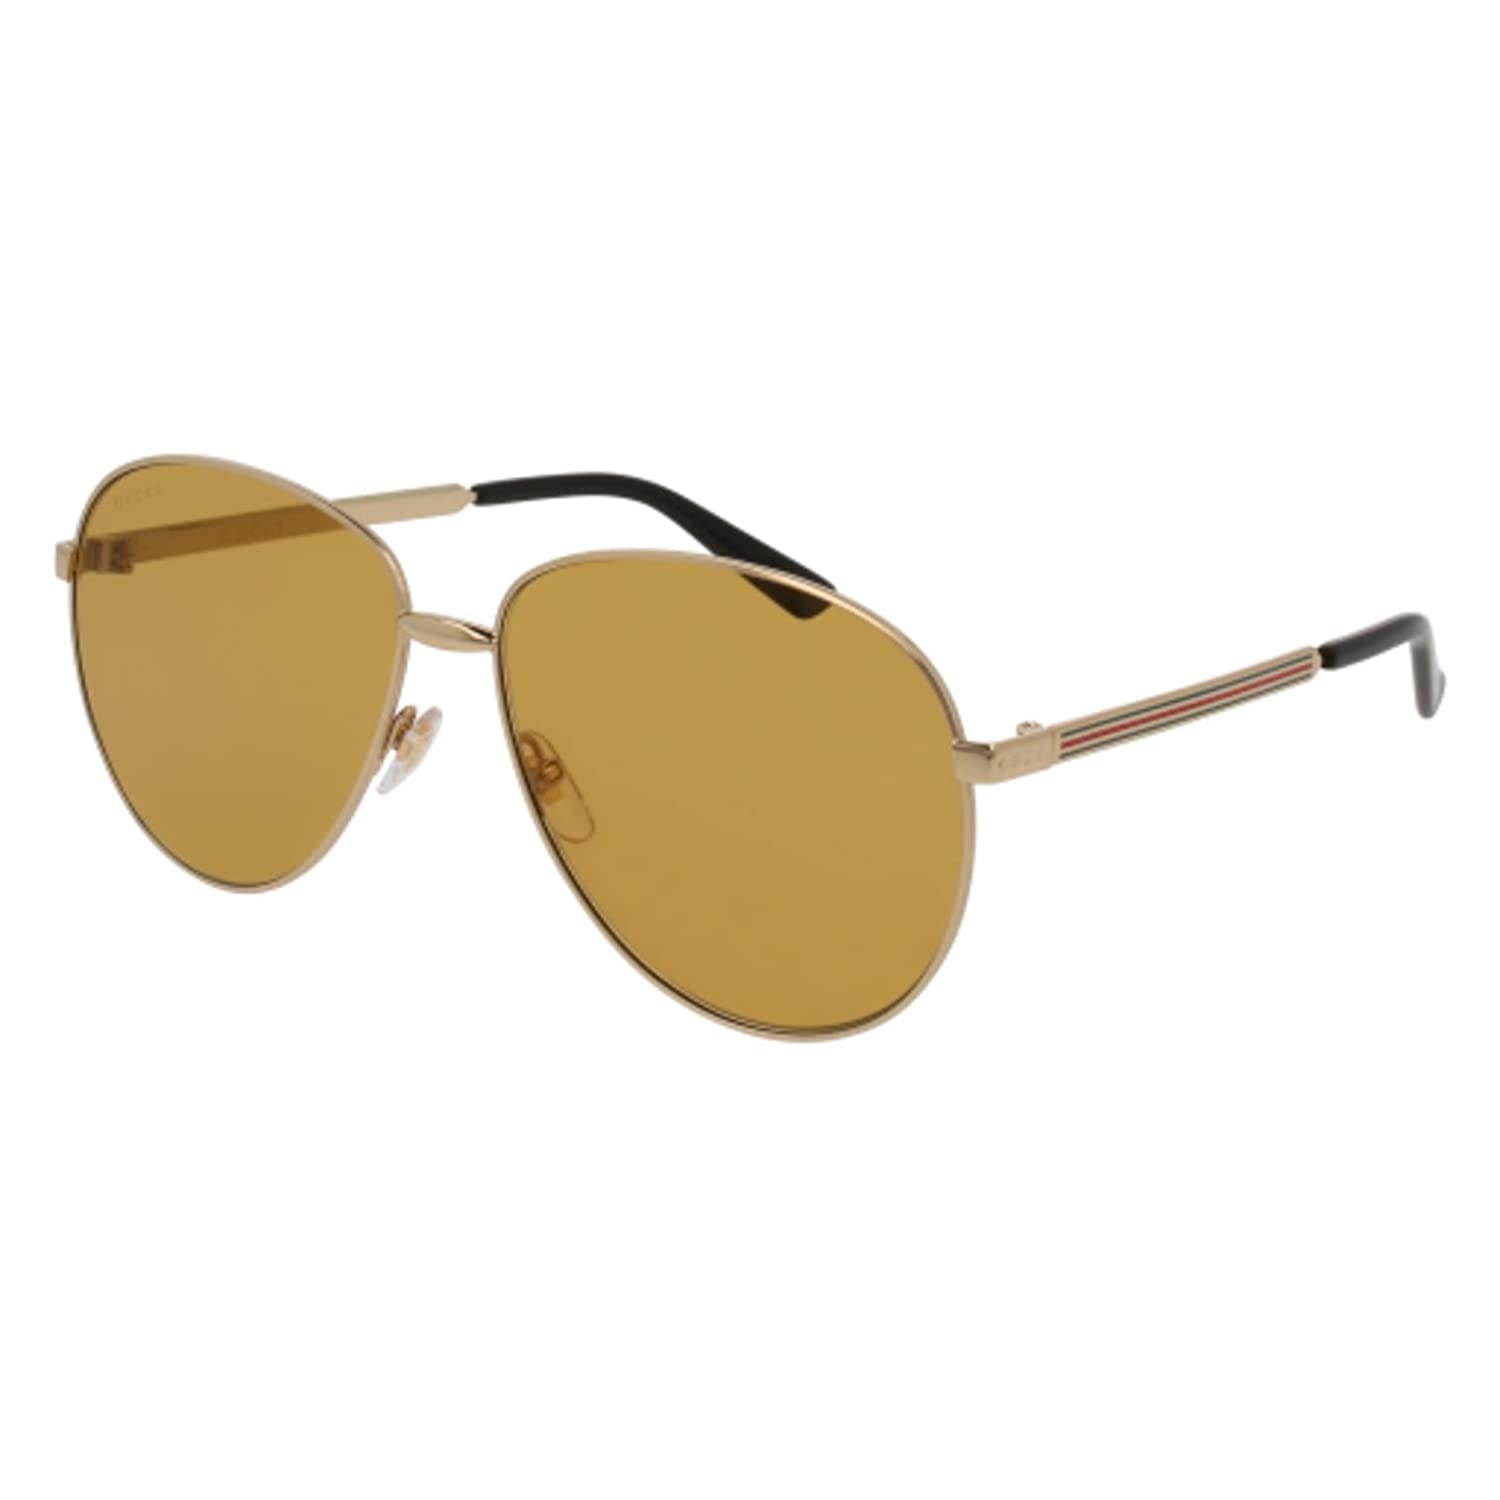 518593f9053 Amazon.com  Sunglasses Gucci GG 0138 S- 002 GOLD BROWN  Clothing